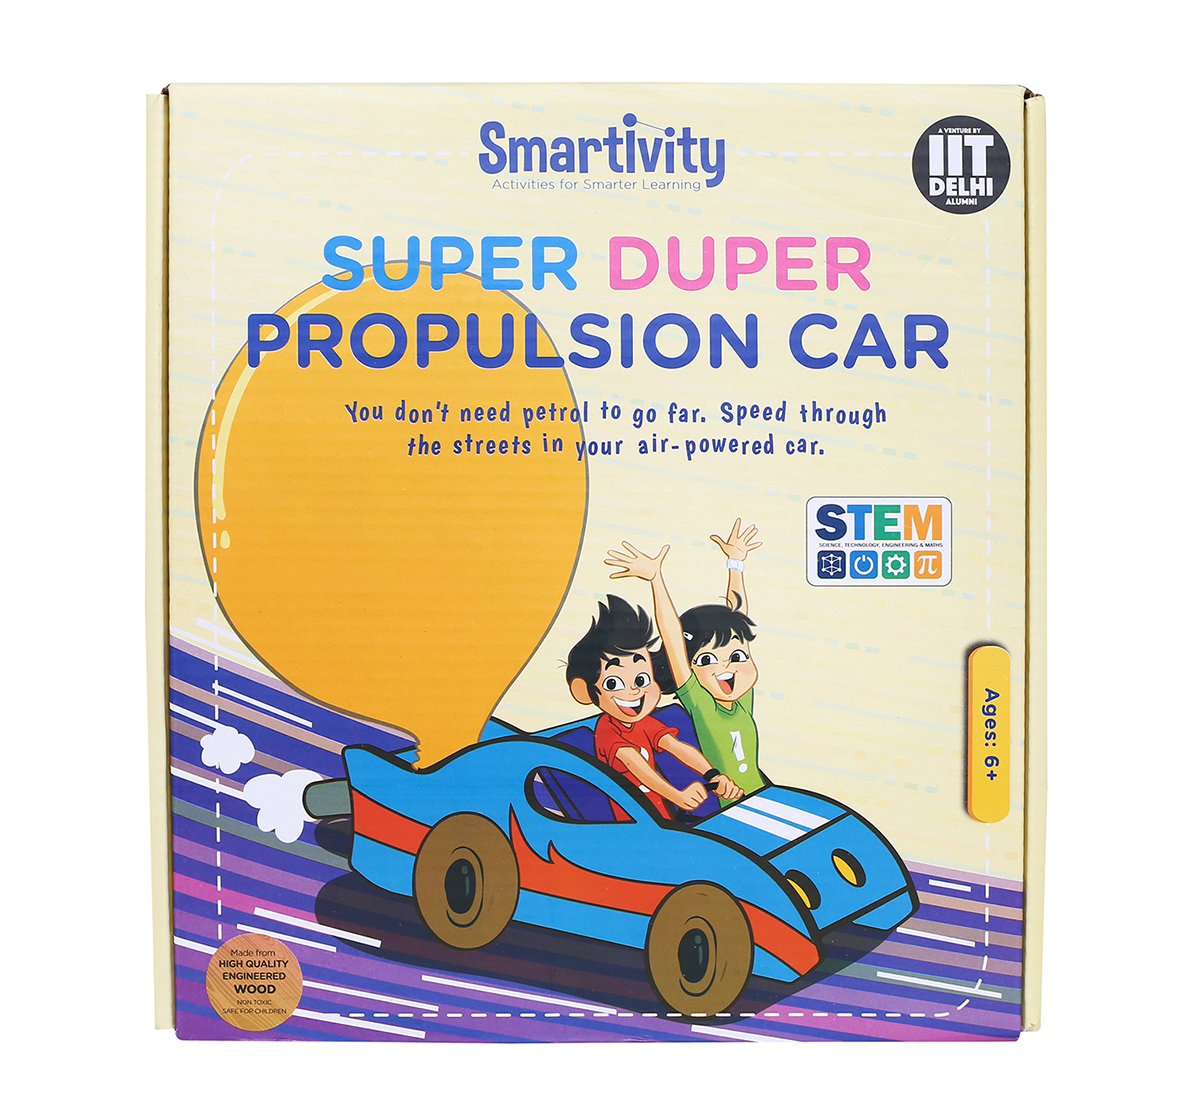 Smartivity | Smartivity Super Duper Propulsion Car: Stem, Learning, Educational And Construction Activity Toy Gift for Kids age 6Y+  (Multi-Color)